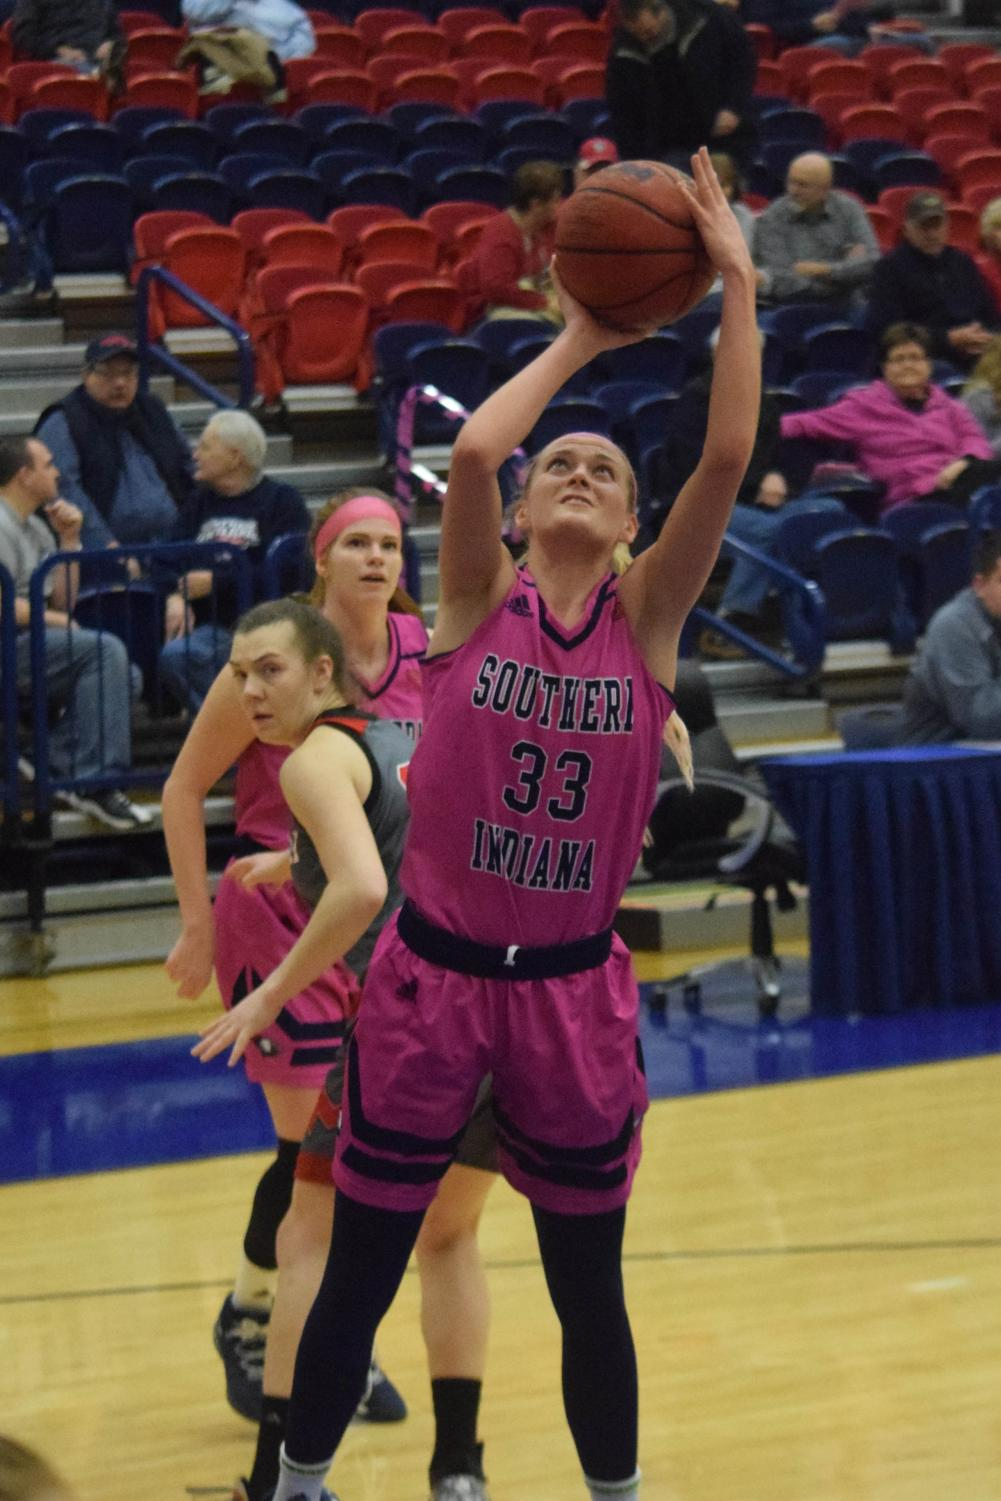 Kaydie+Grooms%2C+senior+guard%2C+goes+up+for+a+layup.